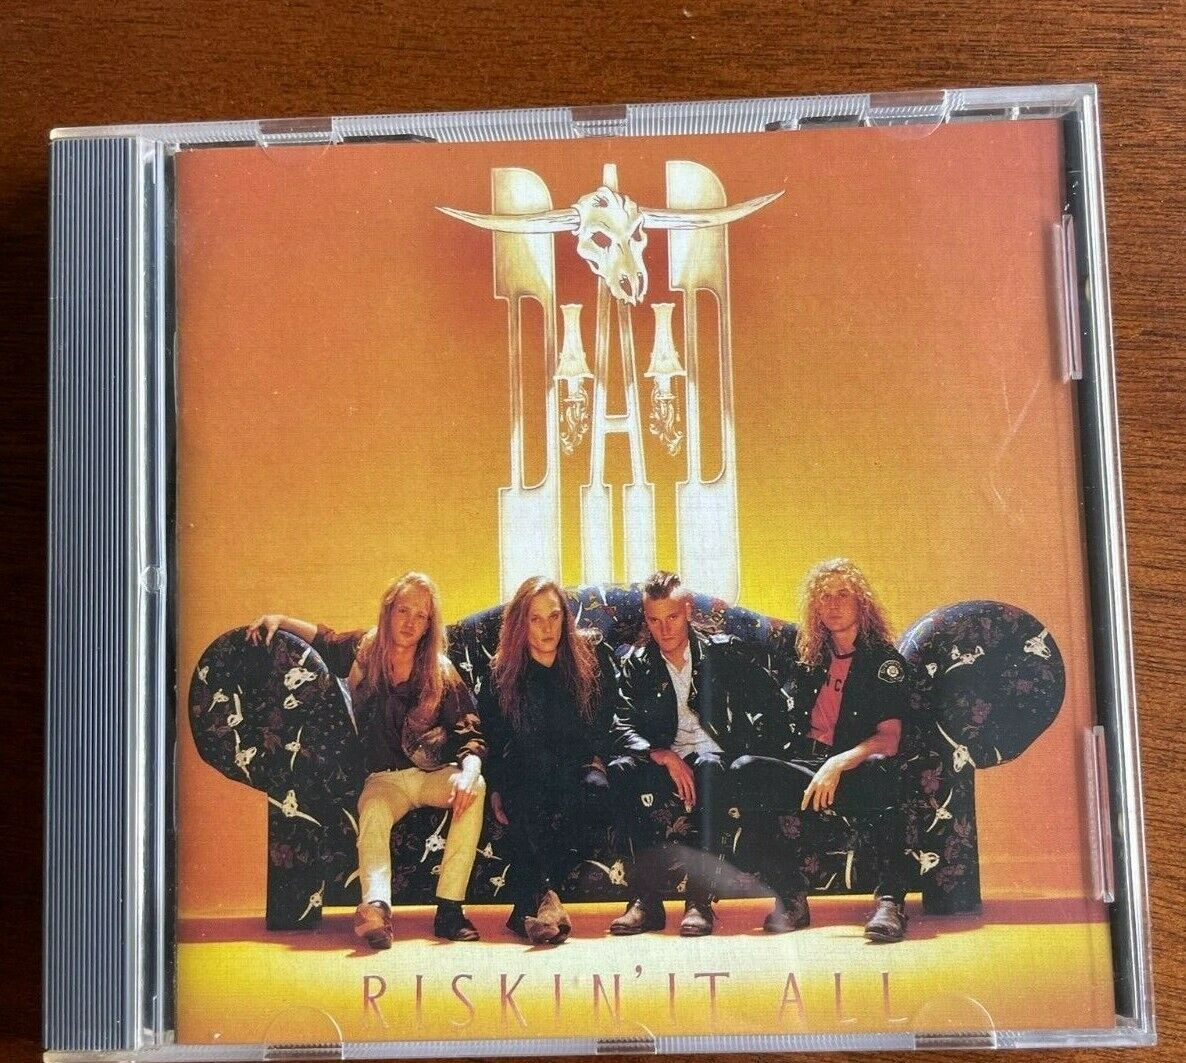 Riskin It All By D A D First Edition CD Condition Nr Mt. - $14.12